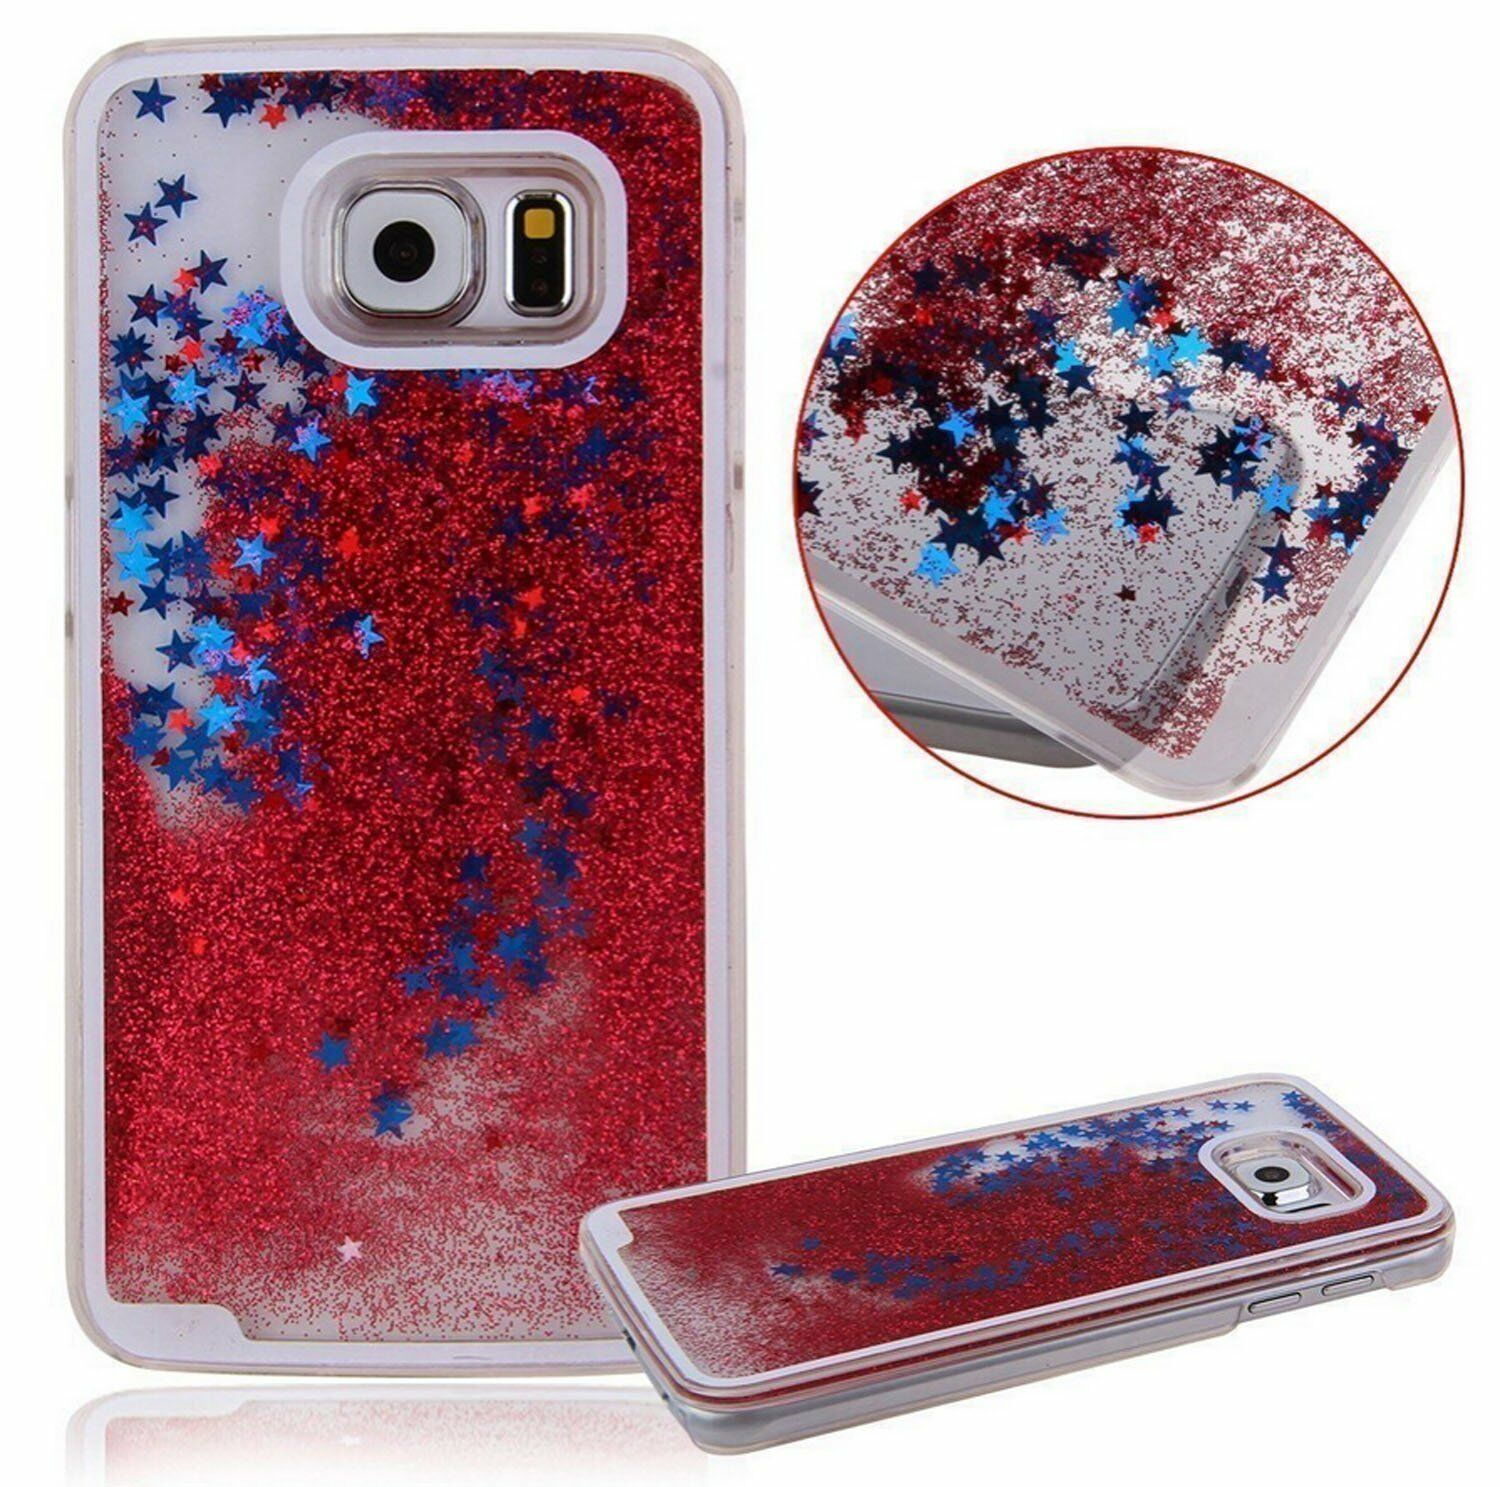 899bdb00f4f Samsung Galaxy S7 - Red Hard Flowing Liquid Case Cover Waterfall Glitter  Stars for sale online | eBay